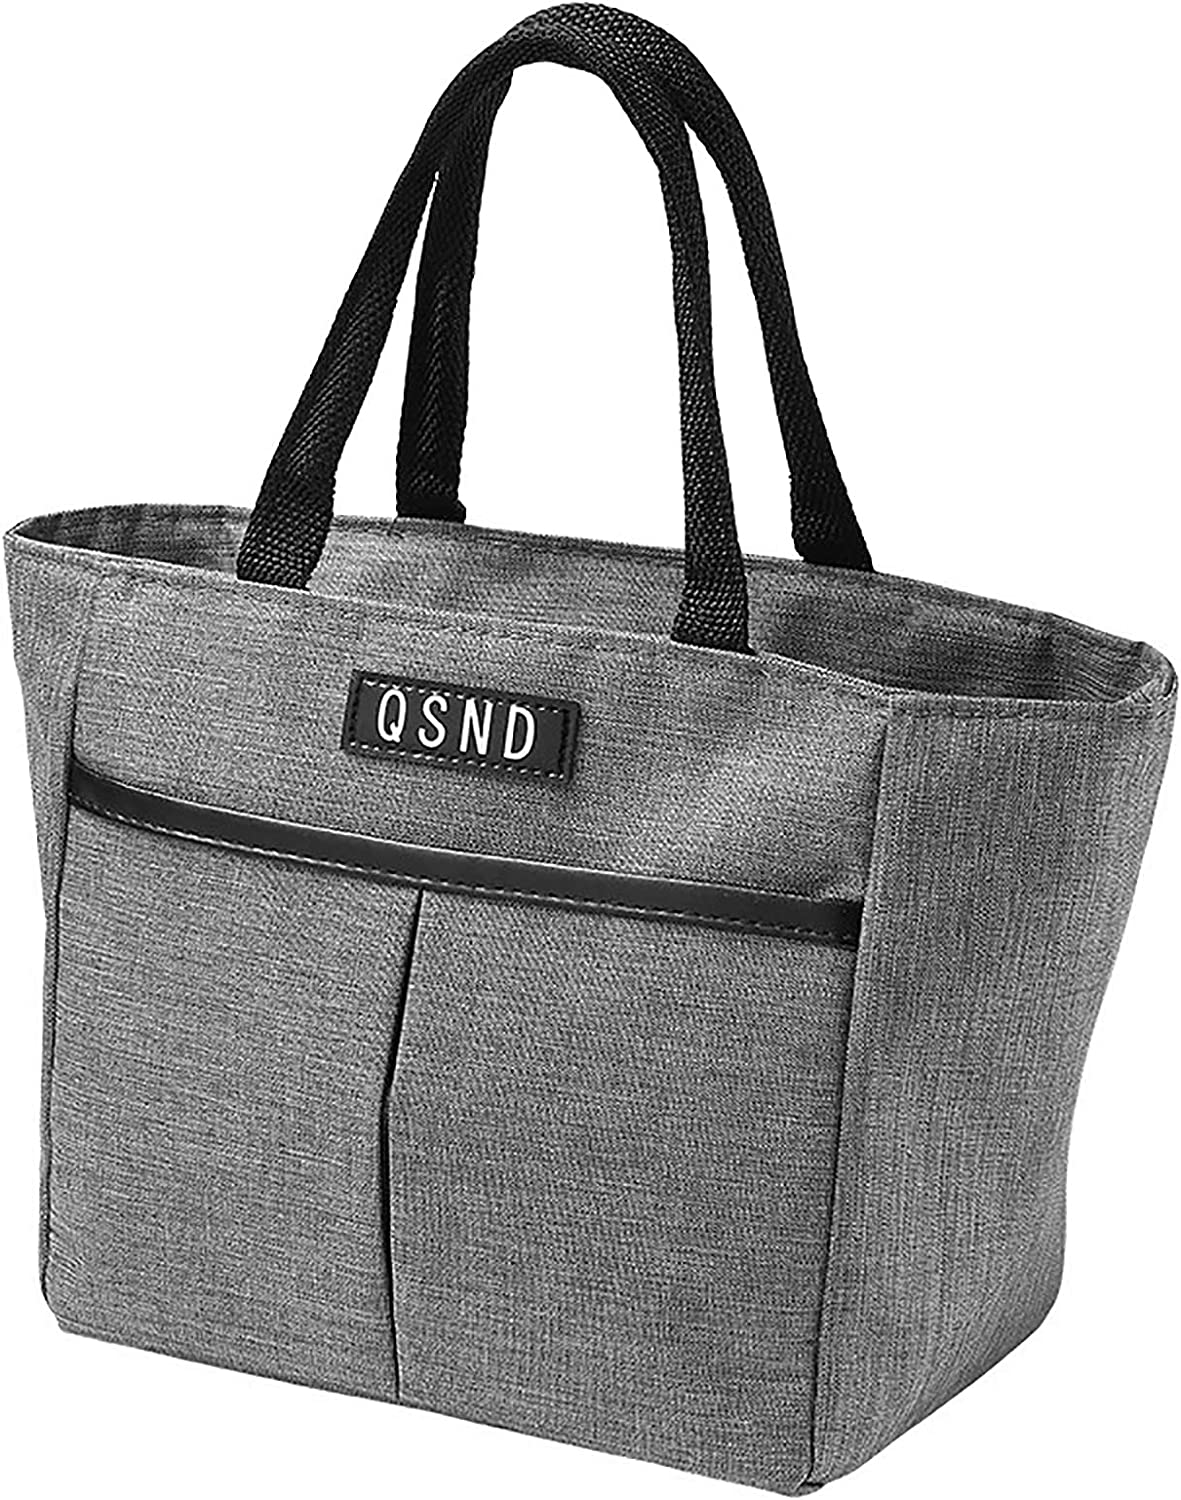 Chase Fans Lunch Bags for Women & Men,Insulated Thermal Lunch Tote Bag,Lunch Box with Front Pocket for Office,Work,Picnic,Beach (Grey)